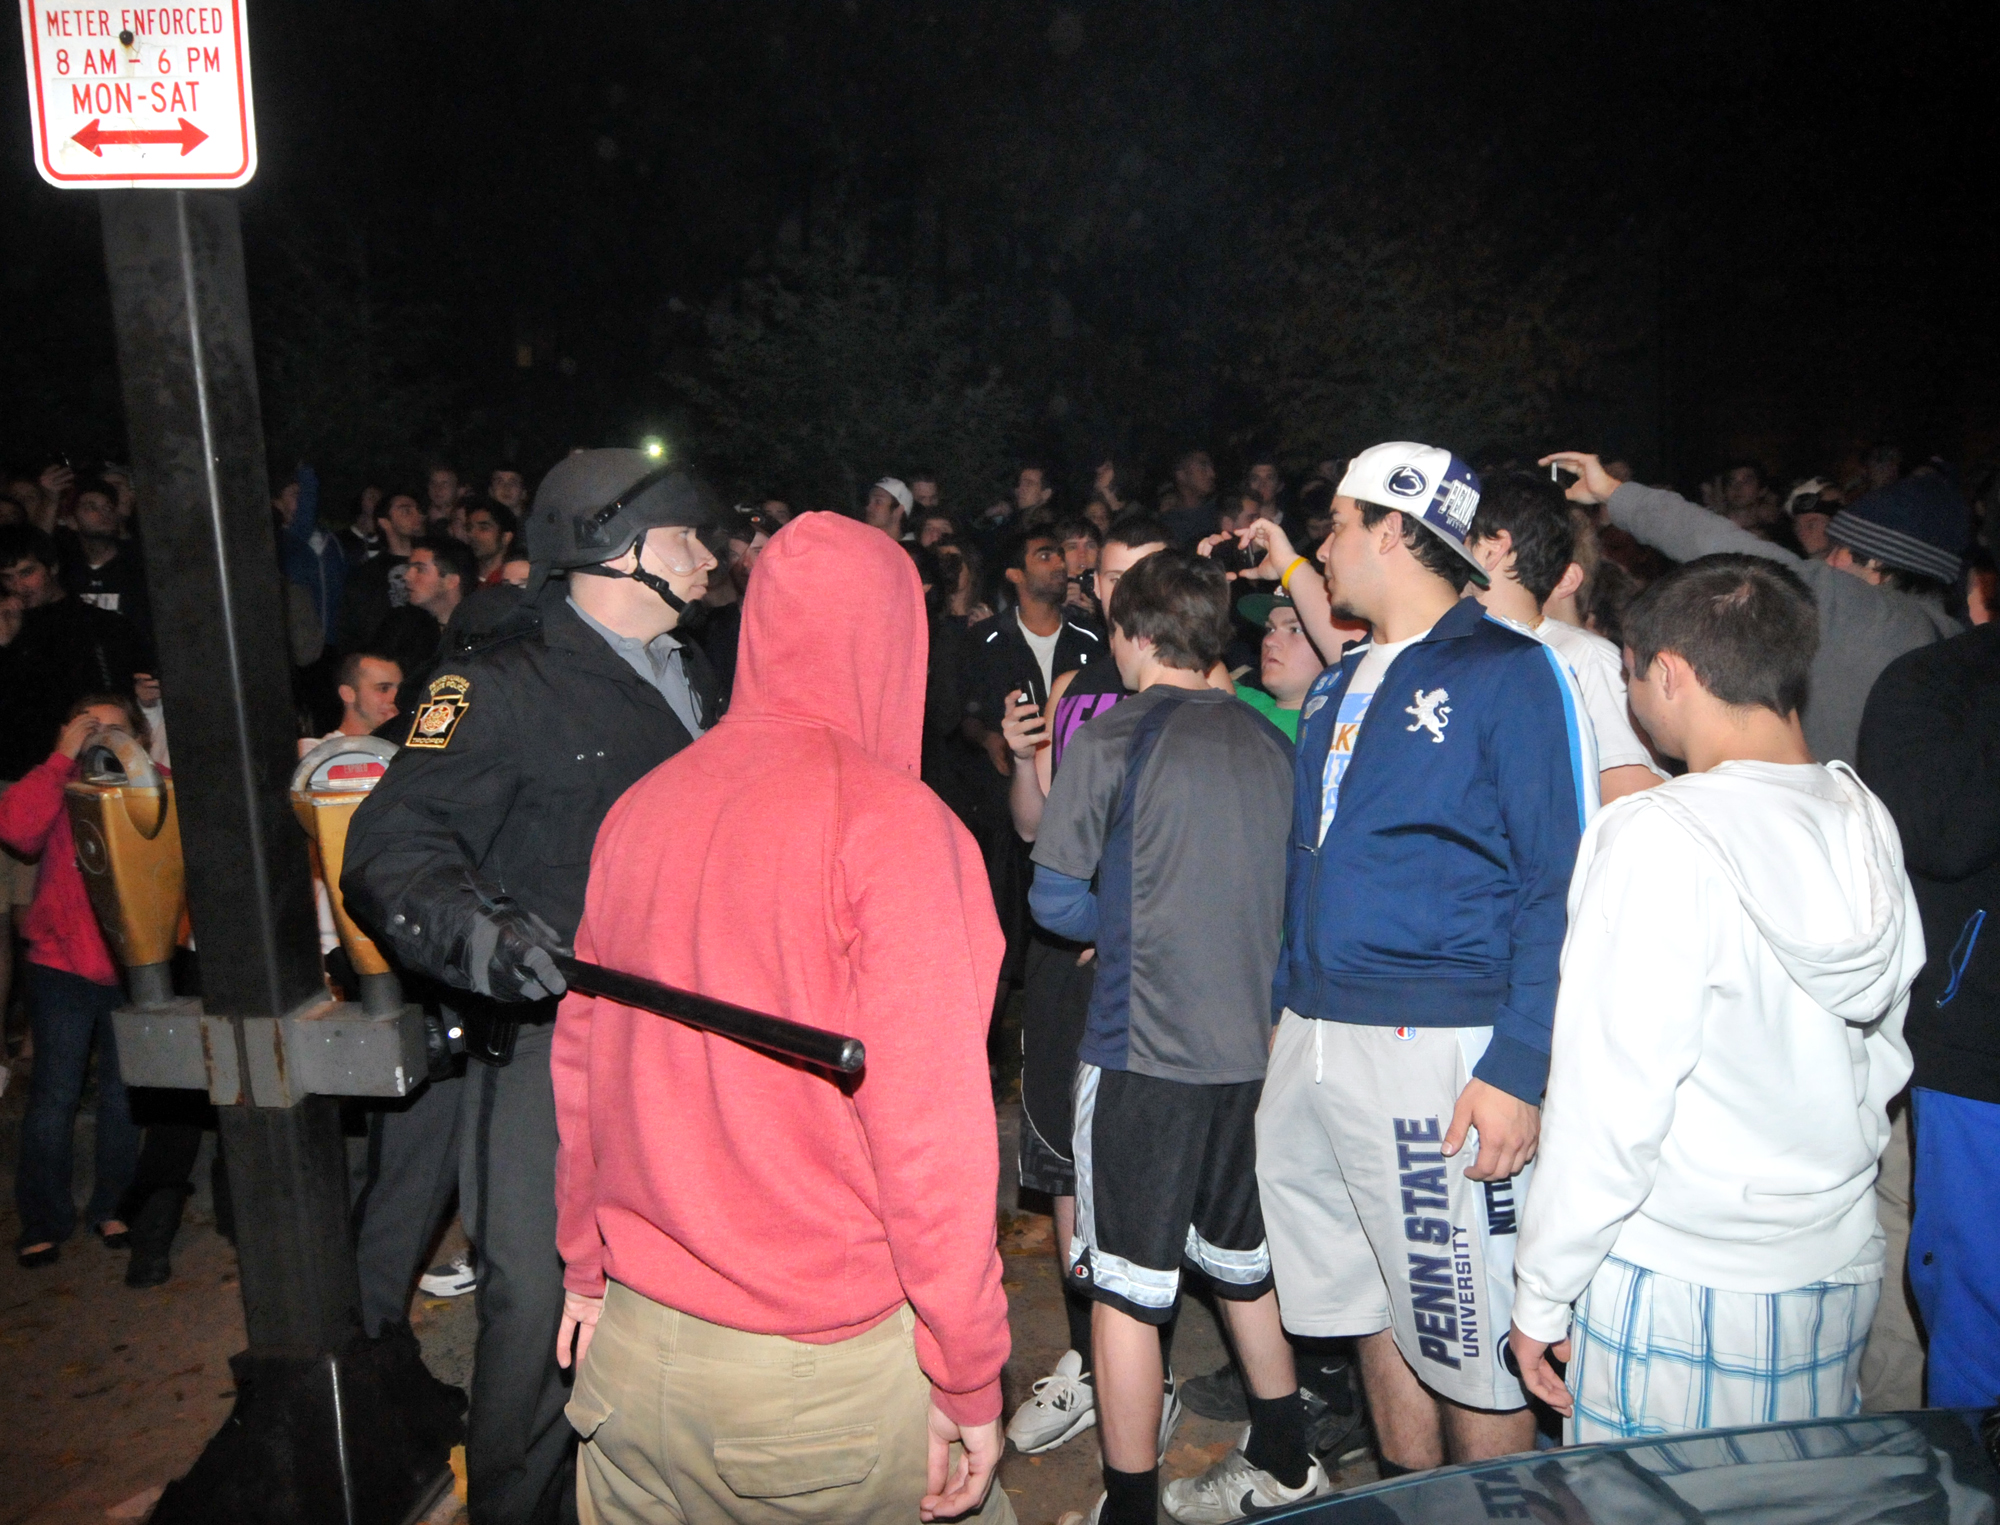 A student is ushered off of the street during the riots in Beaver Canyon in downtown State College on Wednesday night after the riots got violent.